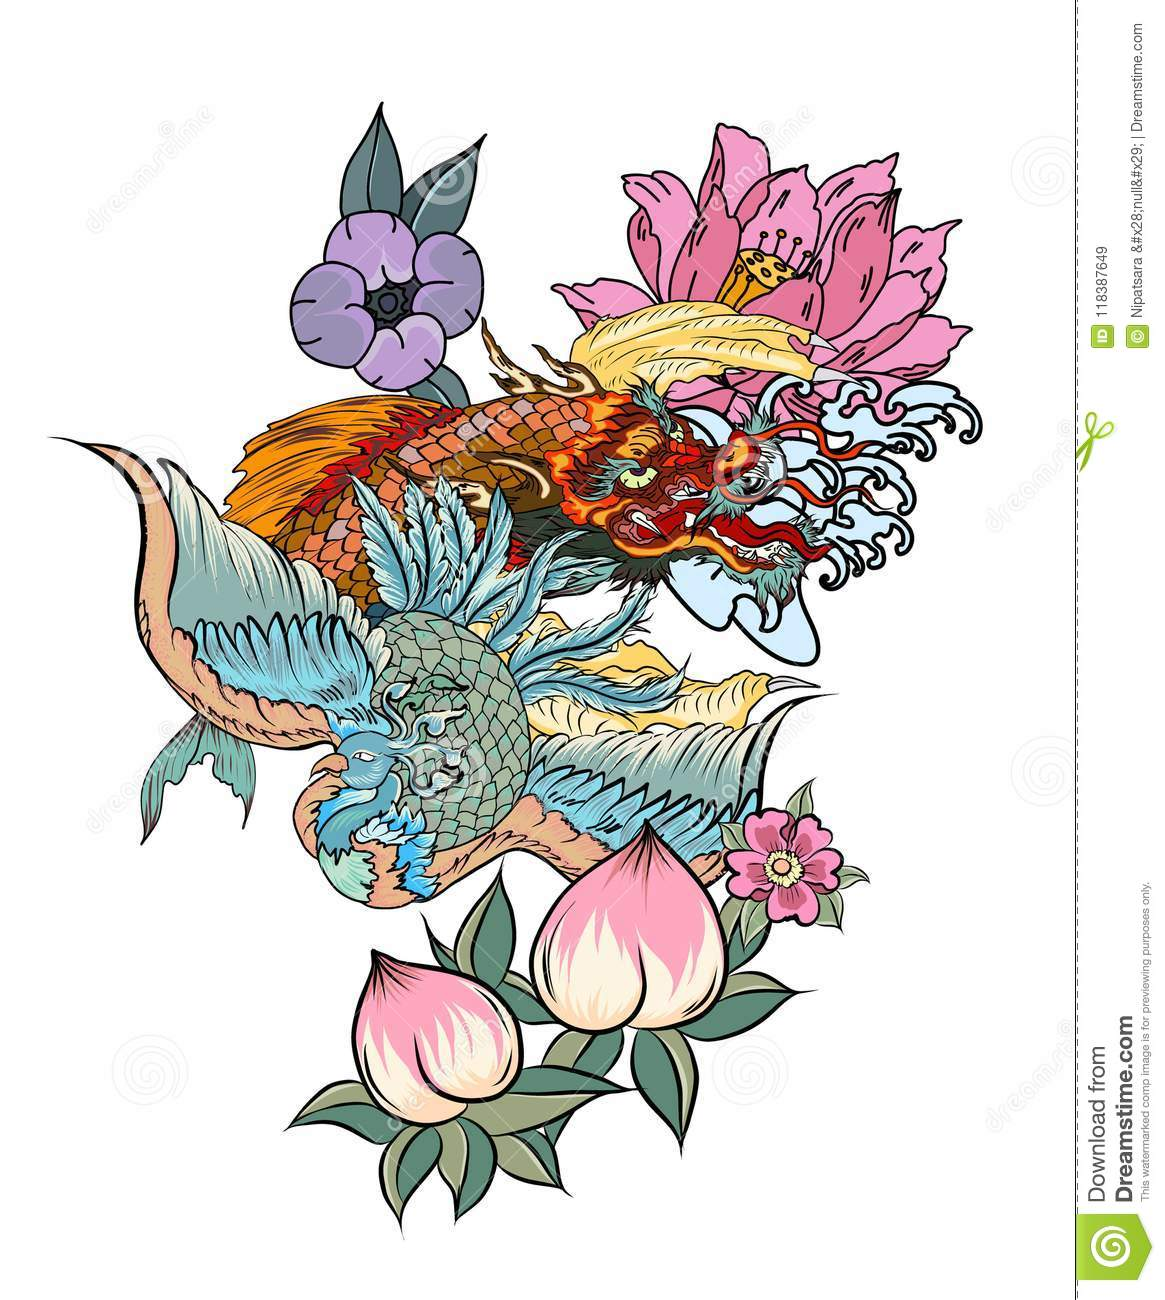 Dragon With Koi Dragon And Lotus Flower Tattooach With Sakura And